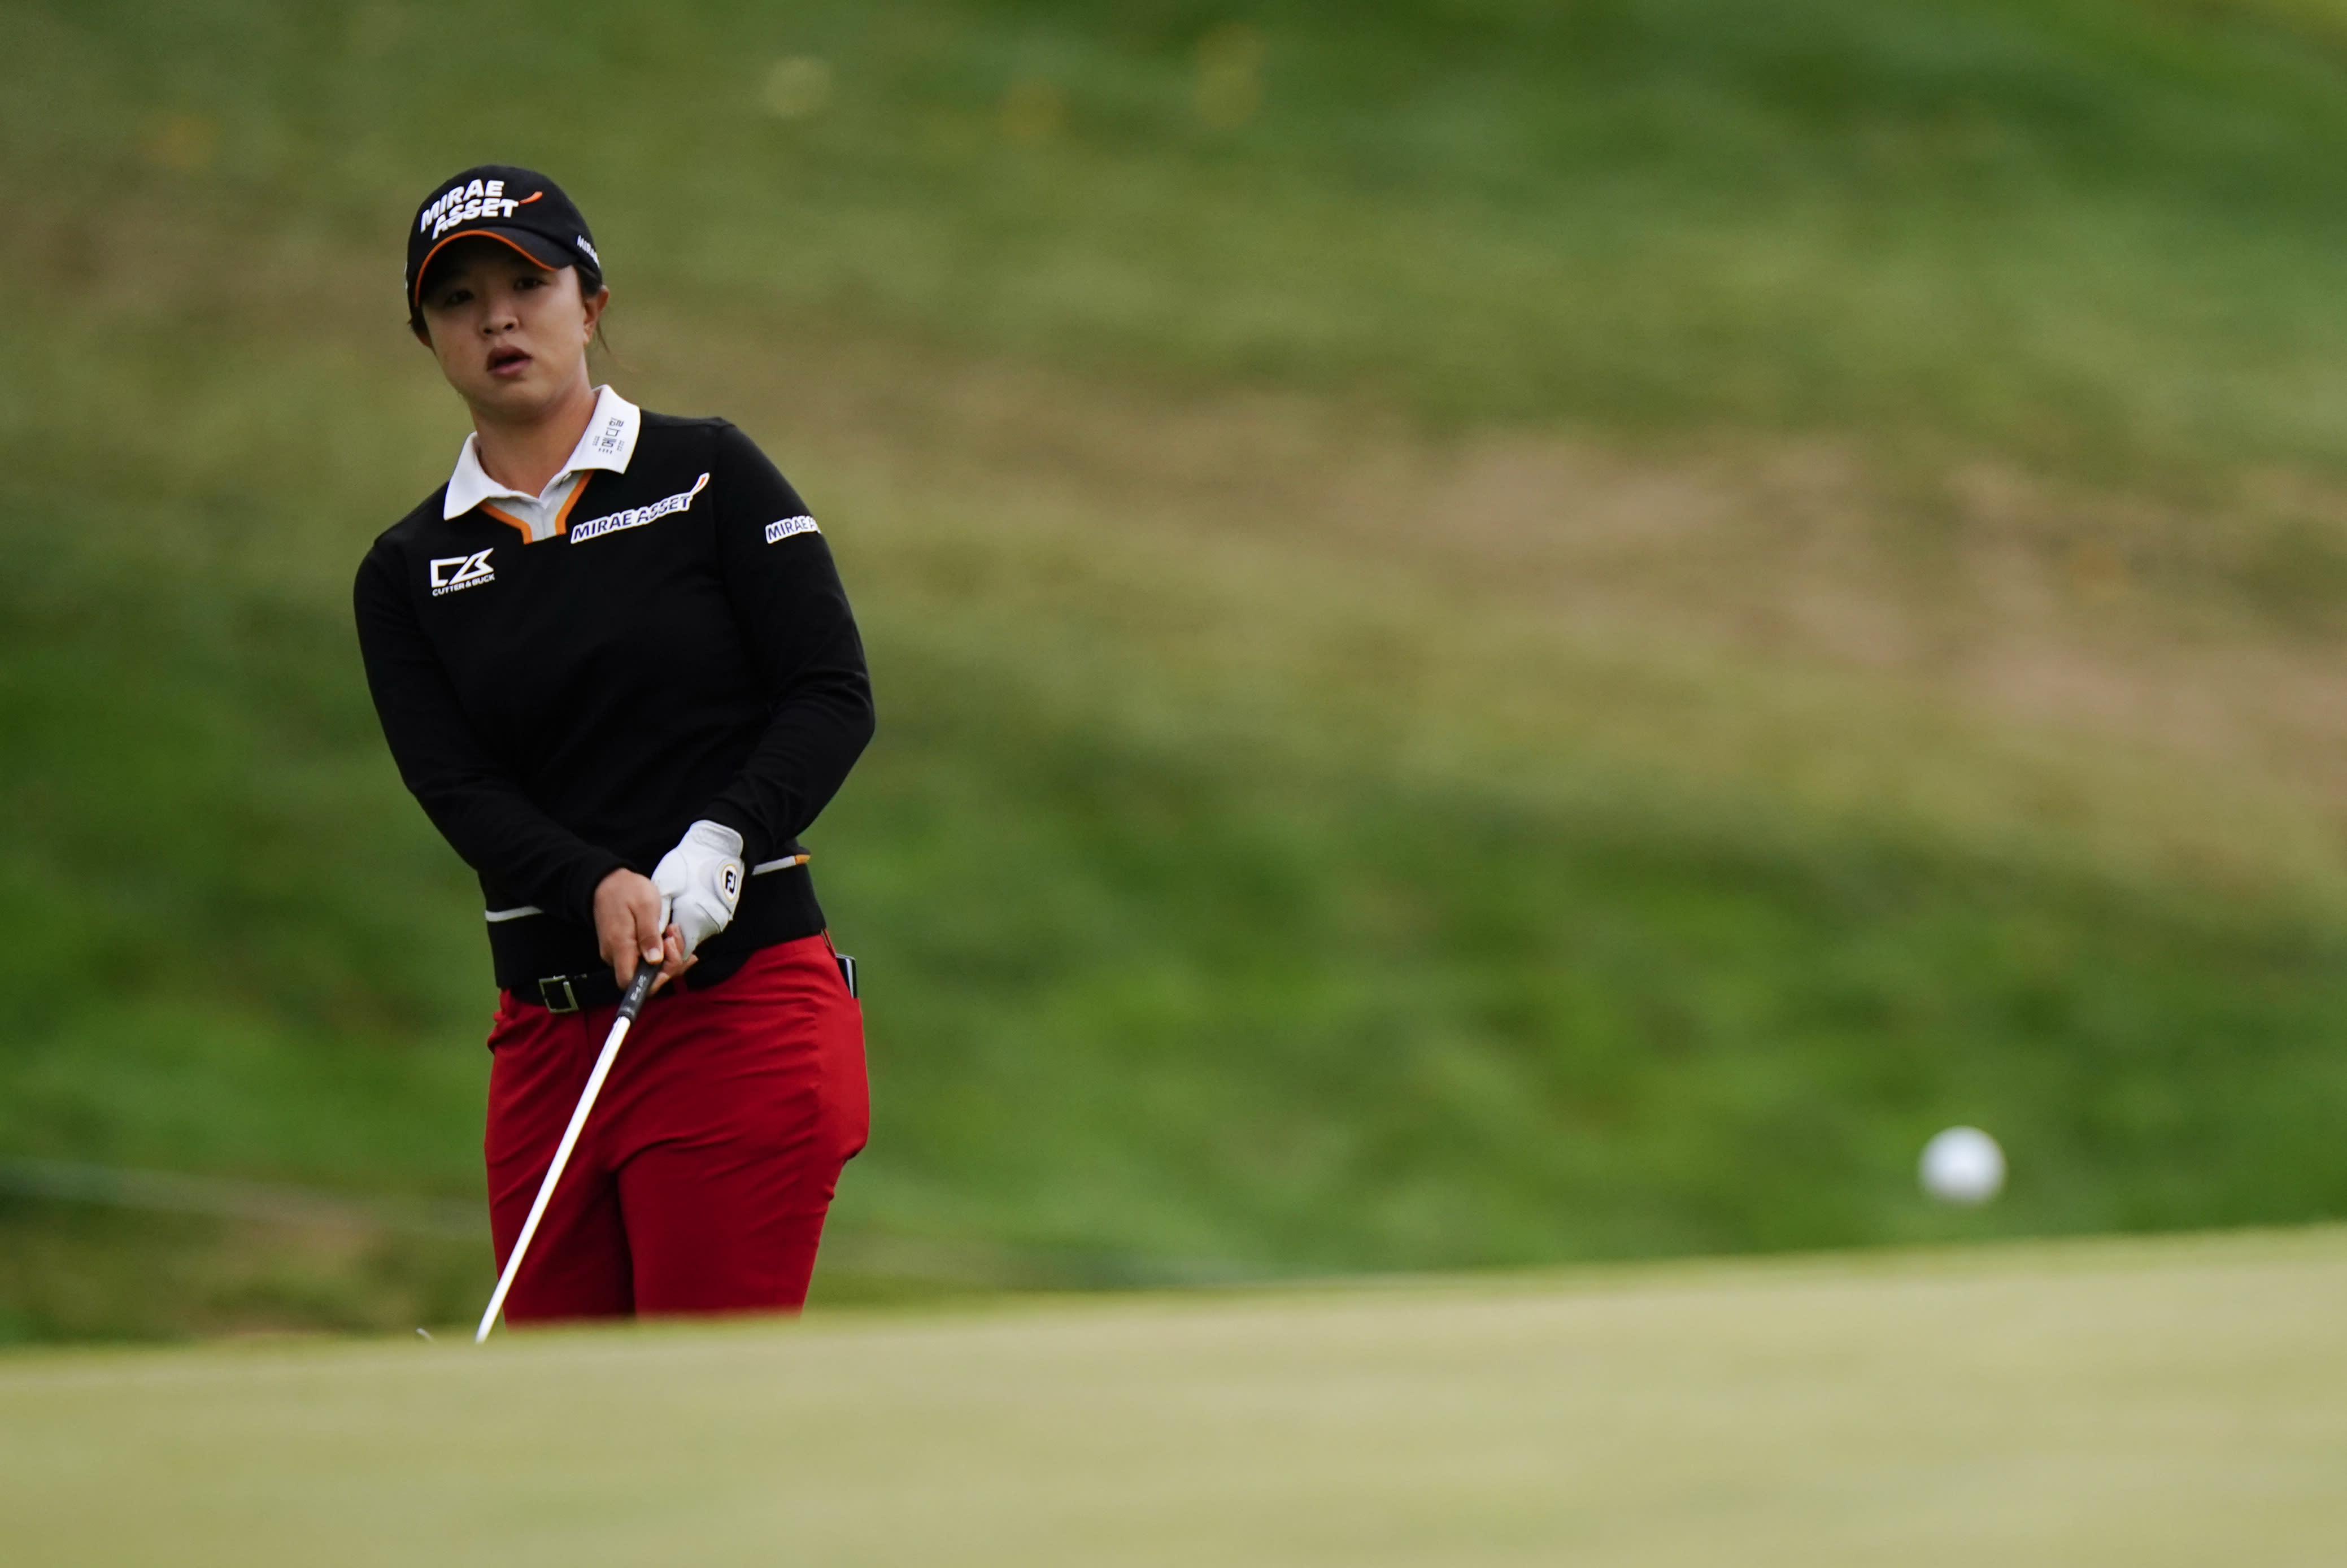 Sei Young Kim, of South Korea, chips to the seventh green during the final round at the KPMG Women's PGA Championship golf tournament at the Aronimink Golf Club, Sunday, Oct. 11, 2020, in Newtown Square, Pa. (AP Photo/Matt Slocum)